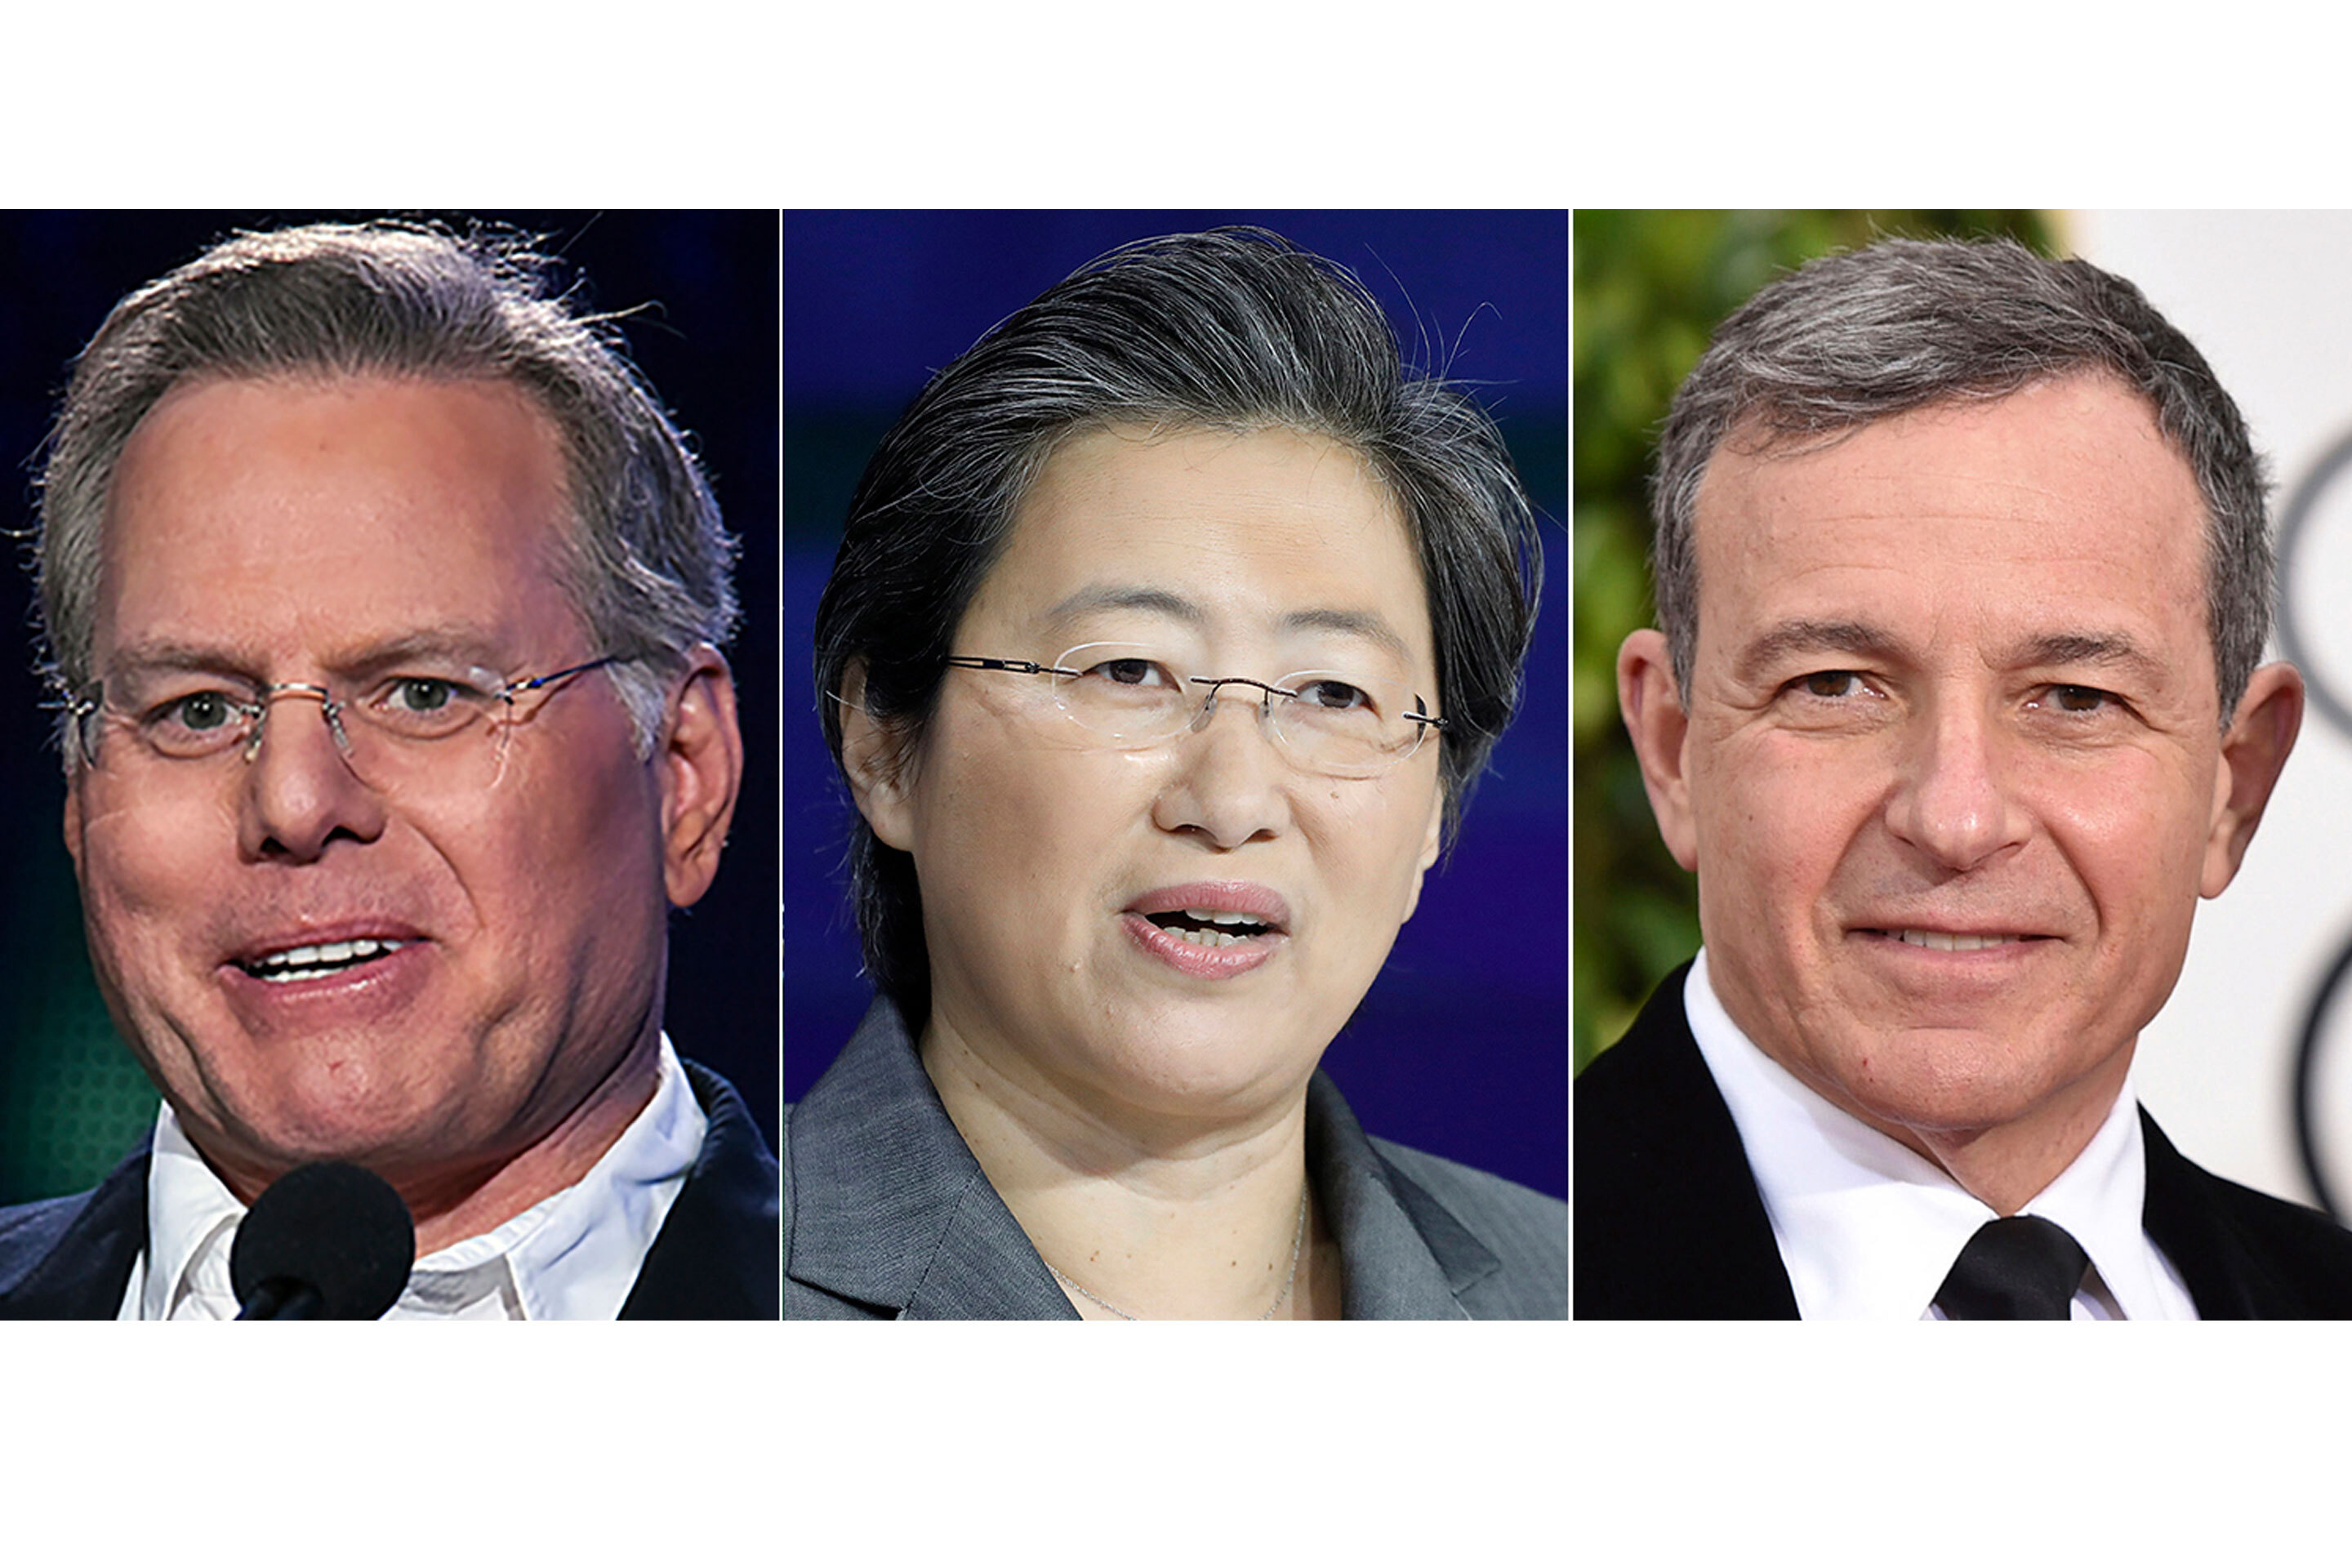 fortune.com - Stan Choe - On average, top CEOs make over $12.3 million. Can that continue after the coronavirus?